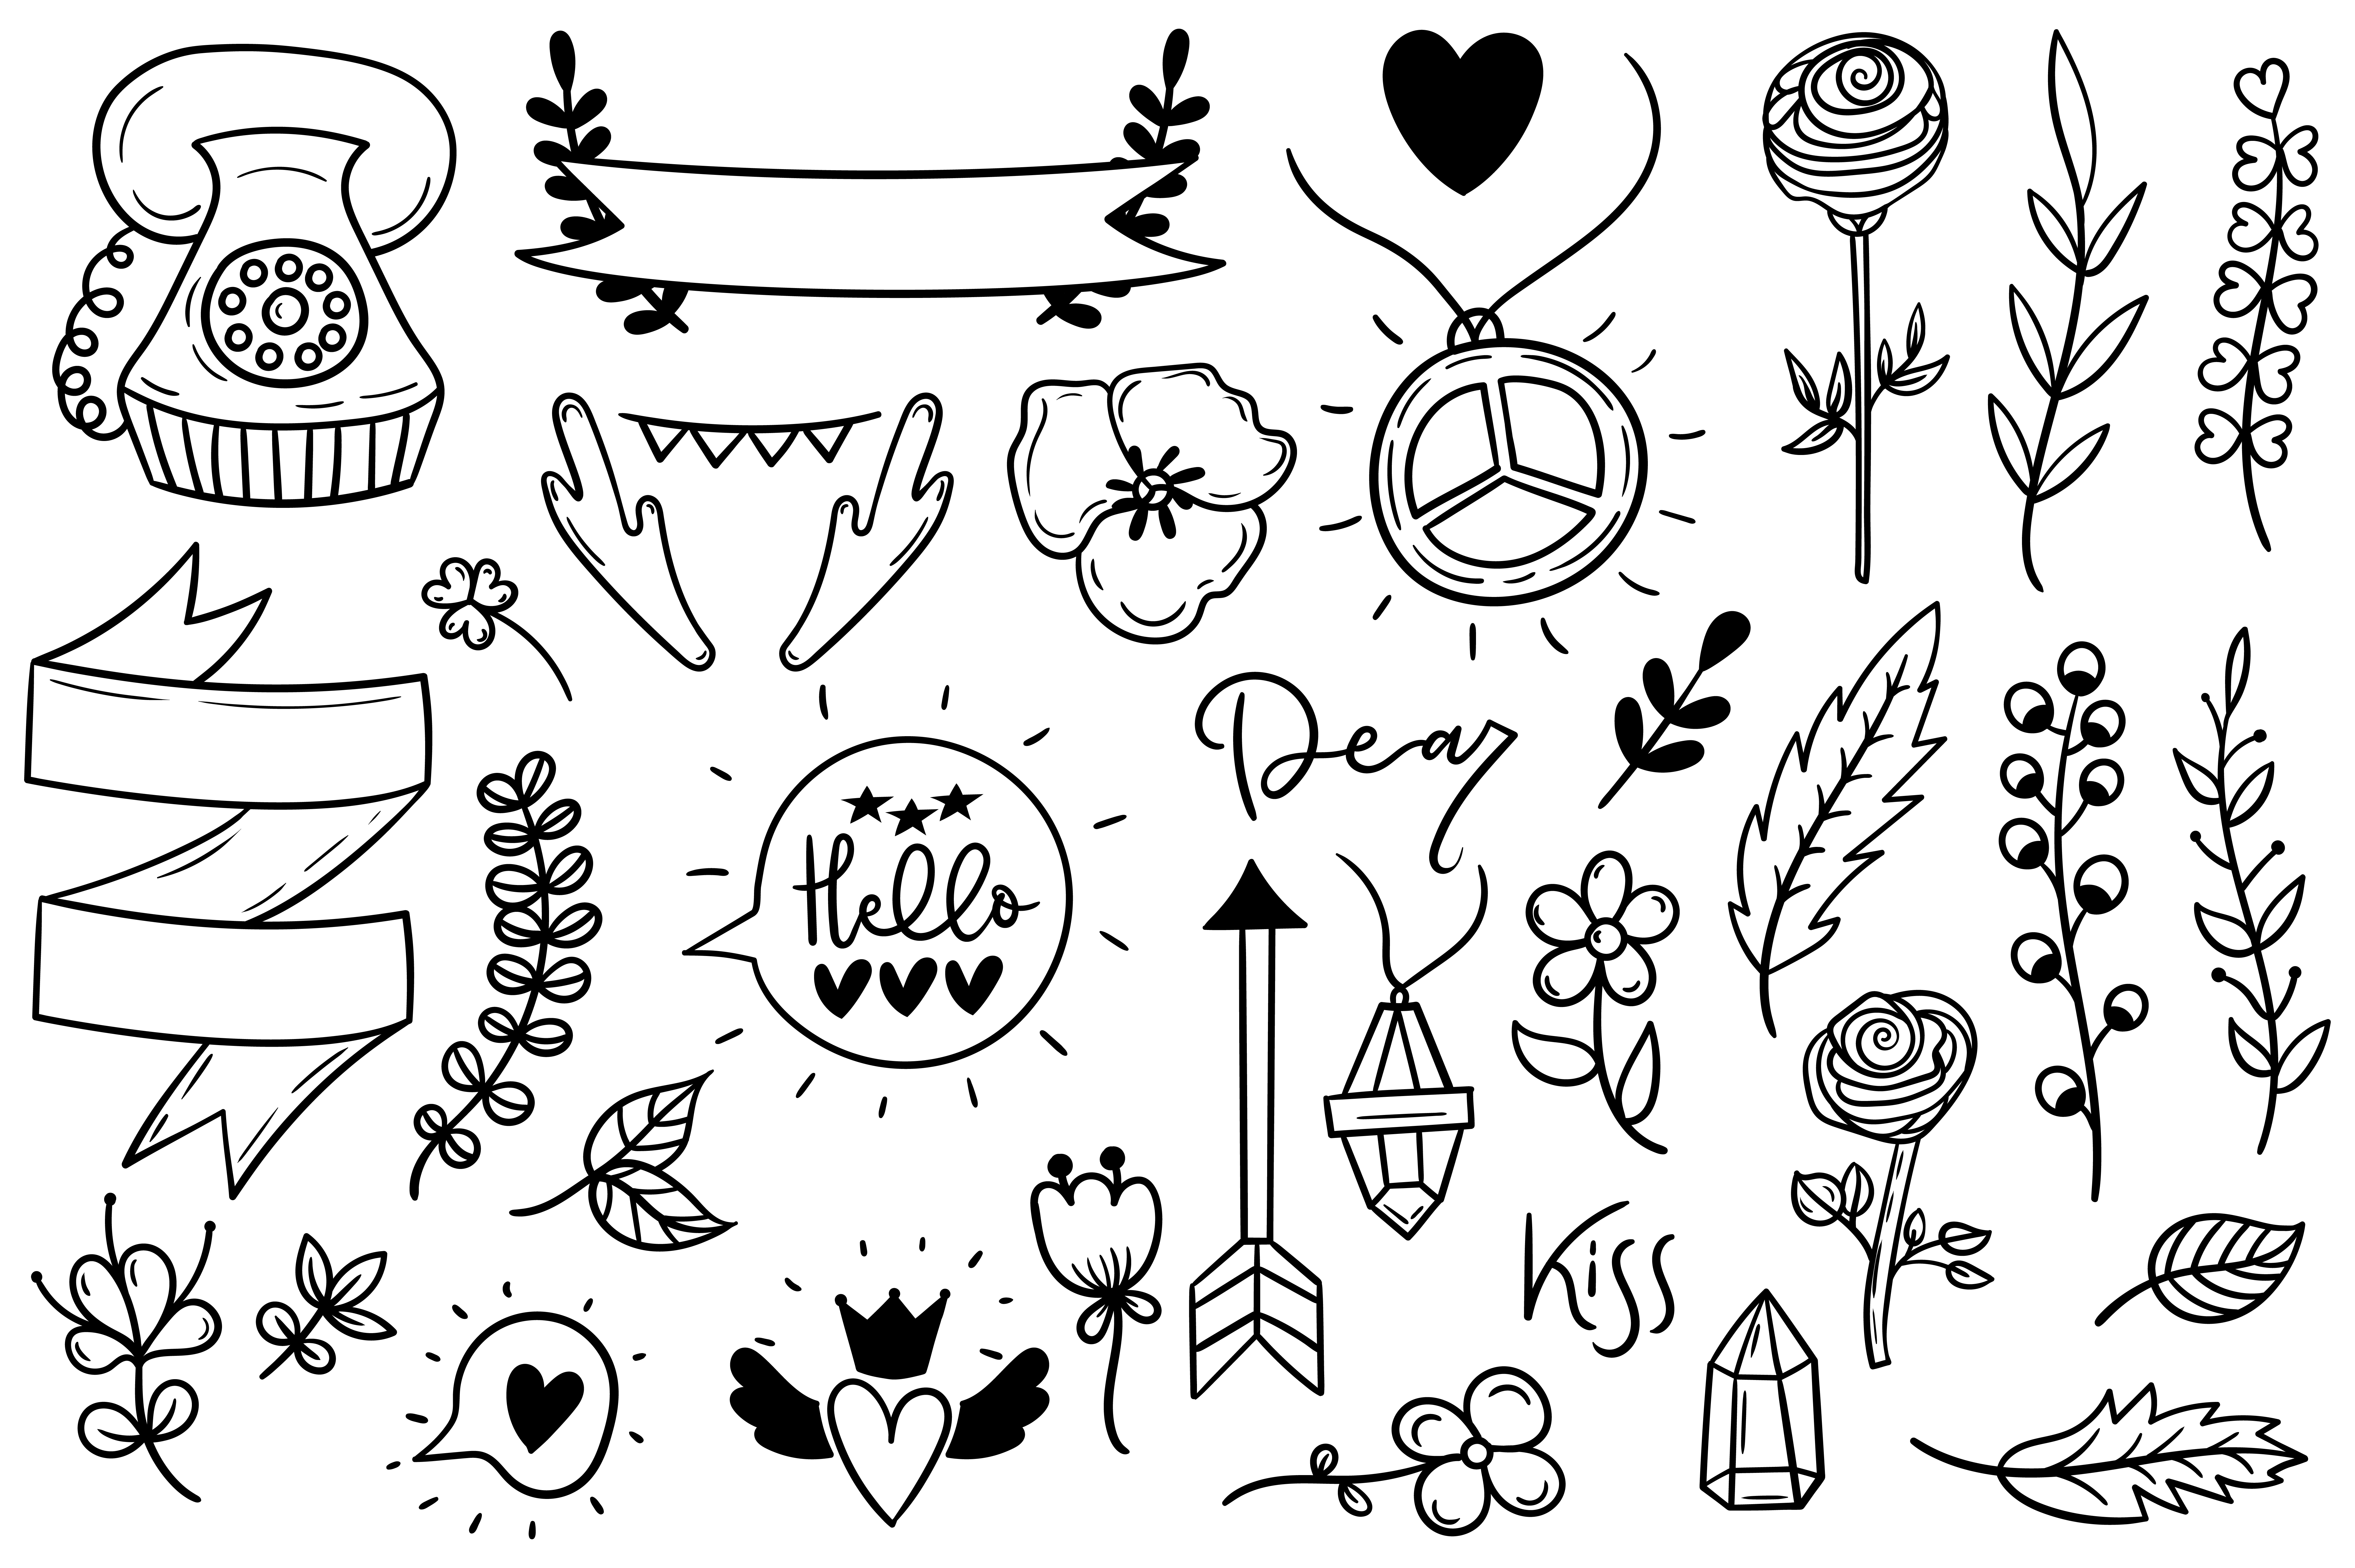 Download Free Set Of Cute Boho Doodles Graphic By Sentimental Postman for Cricut Explore, Silhouette and other cutting machines.